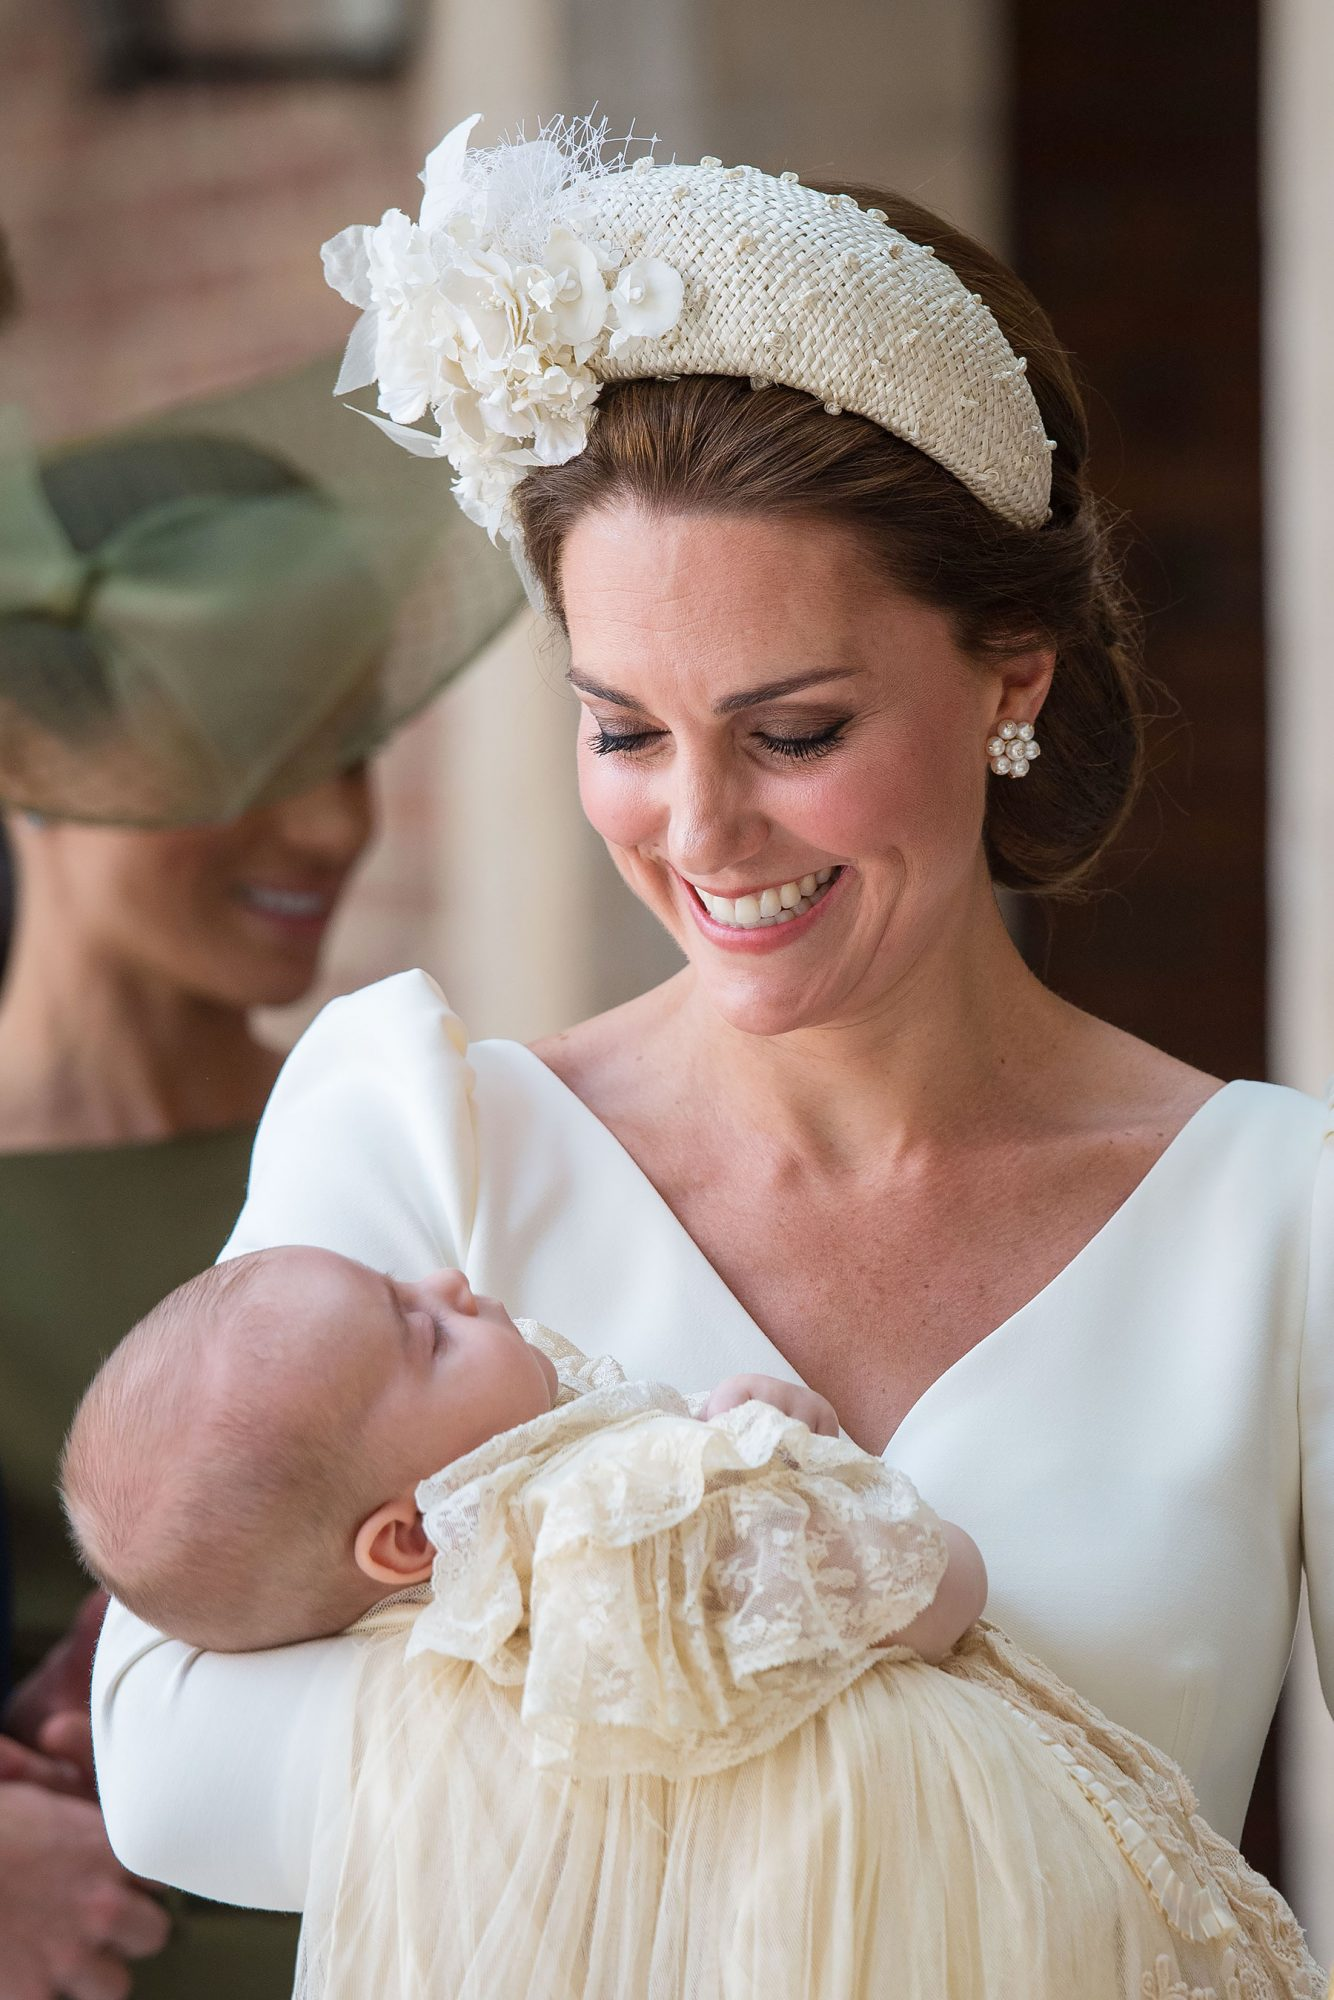 OCT. 23: PRINCE LOUIS IS 6 MONTHS OLD